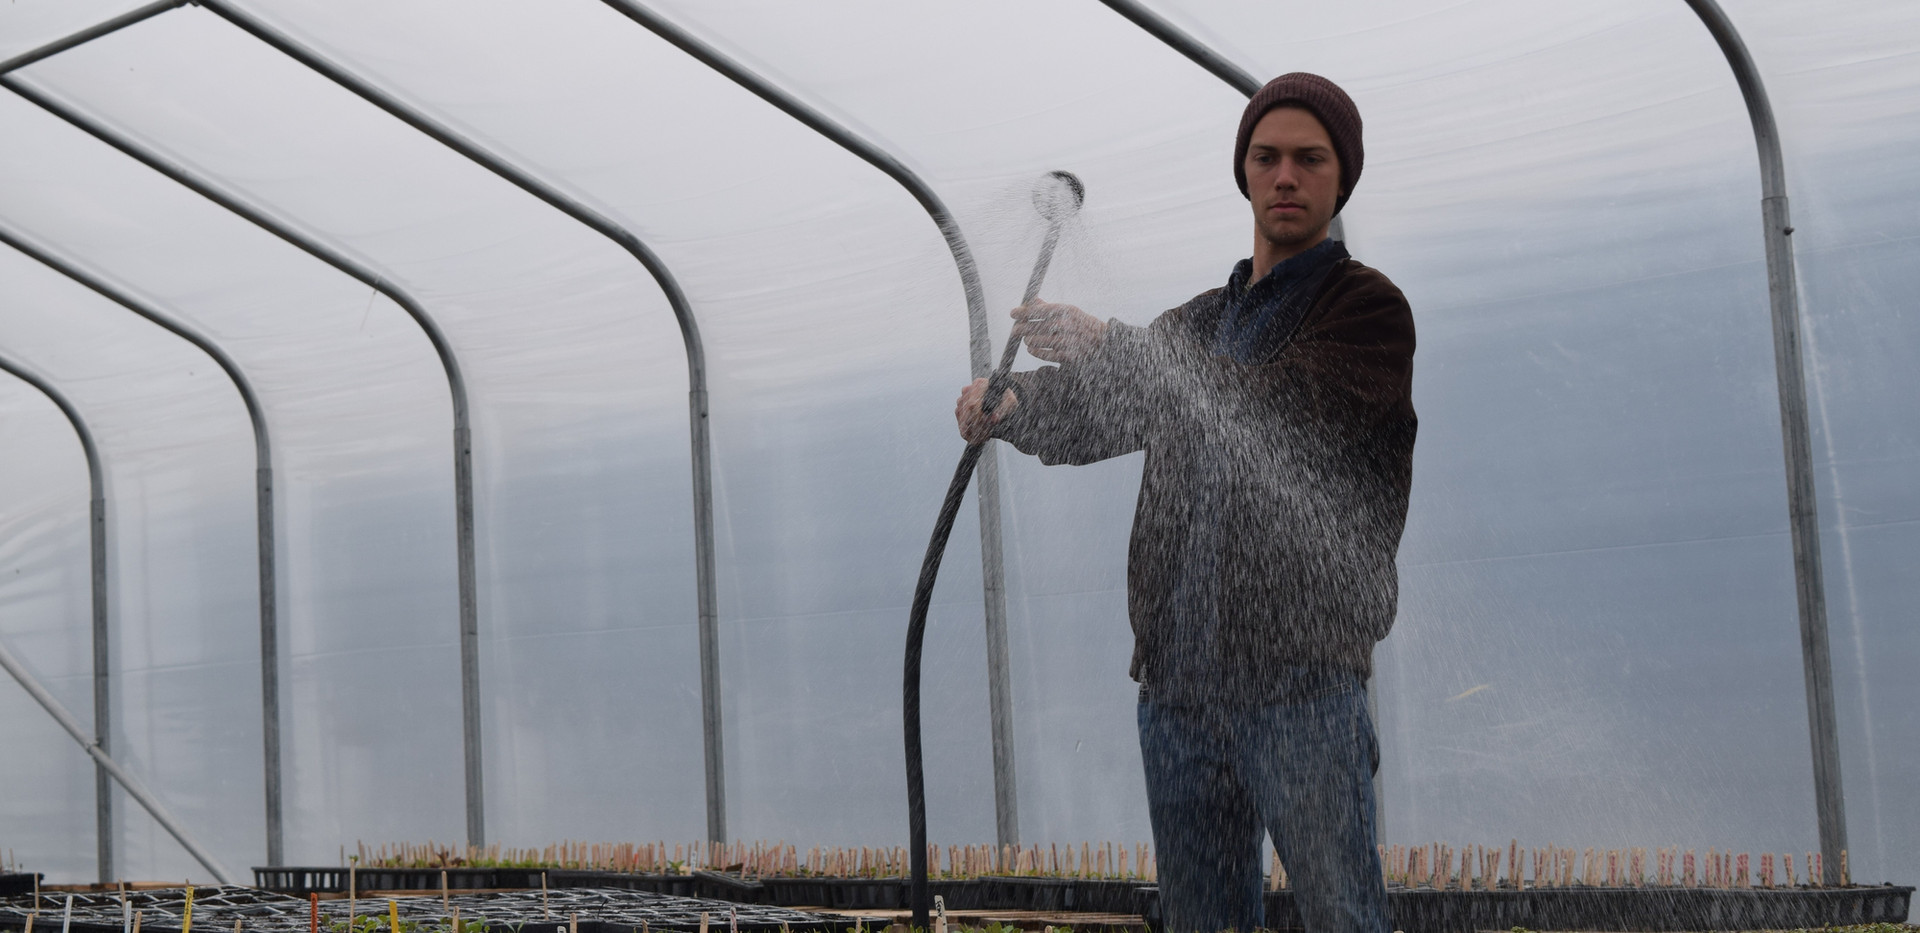 Matthew Watering Greenhouse.JPG